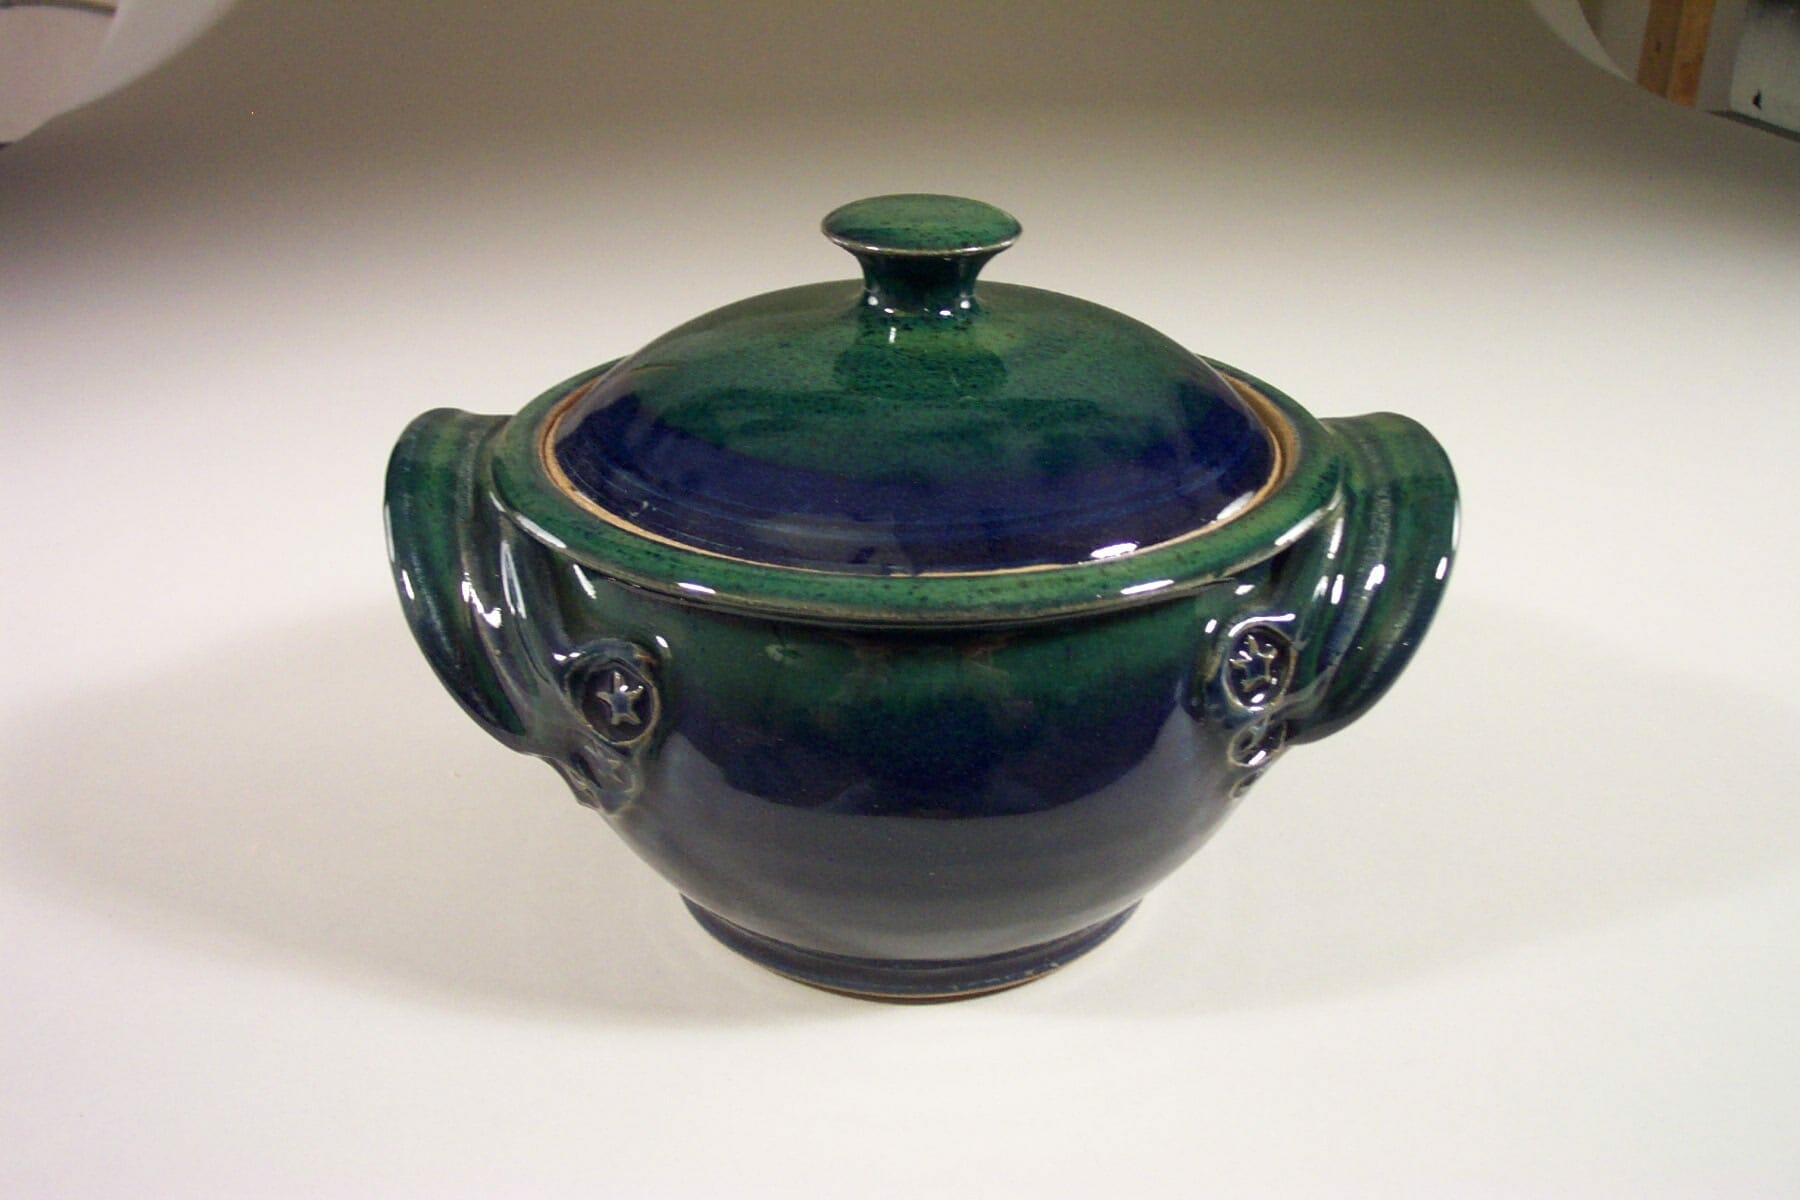 Small Casserole 1 with Lid Smooth Design in Dark Blue and Green Glaze